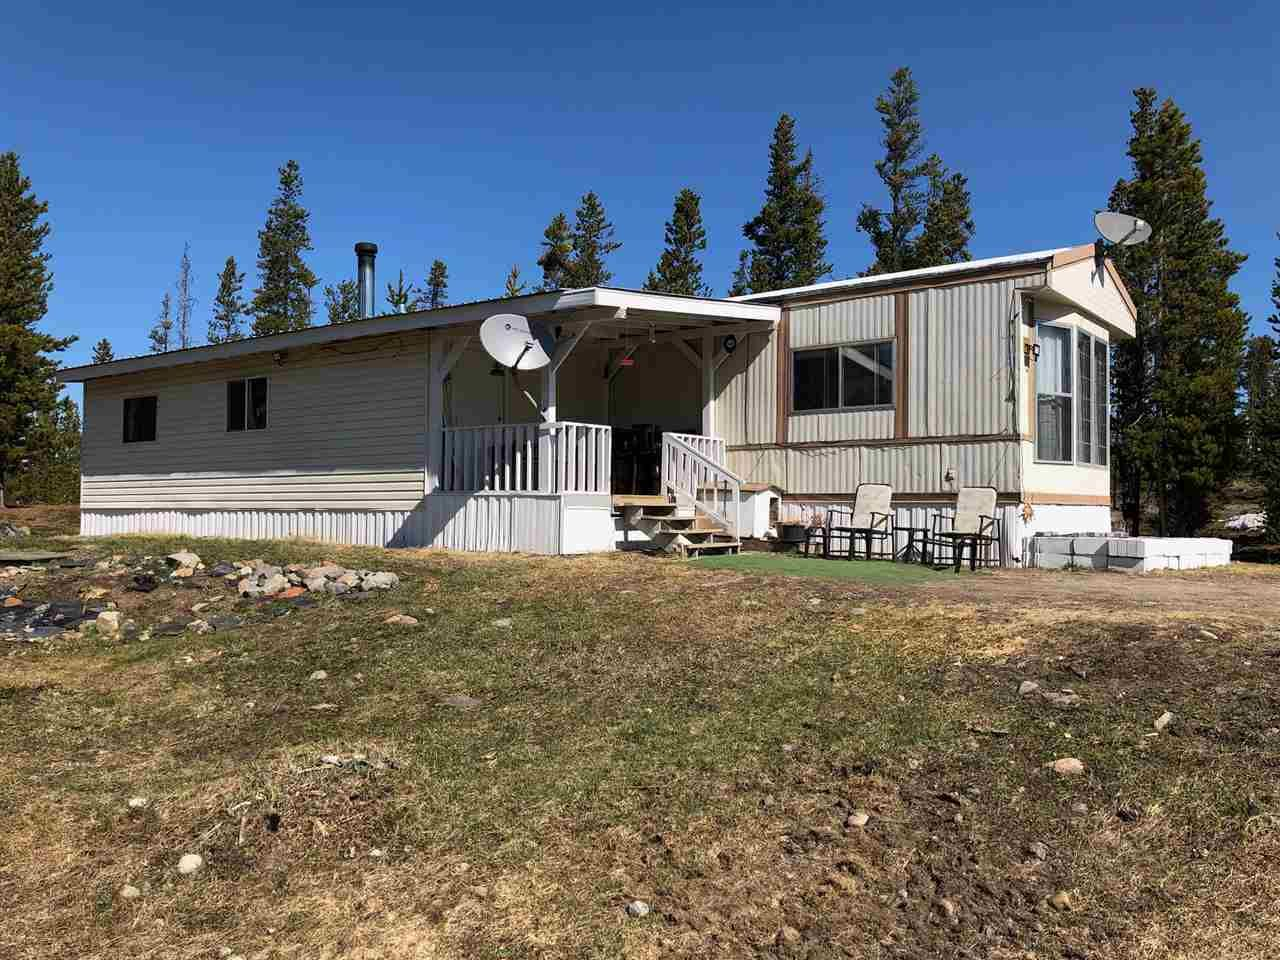 Main Photo: 2115 DORSEY Road in Williams Lake: Williams Lake - Rural West Manufactured Home for sale (Williams Lake (Zone 27))  : MLS®# R2571214